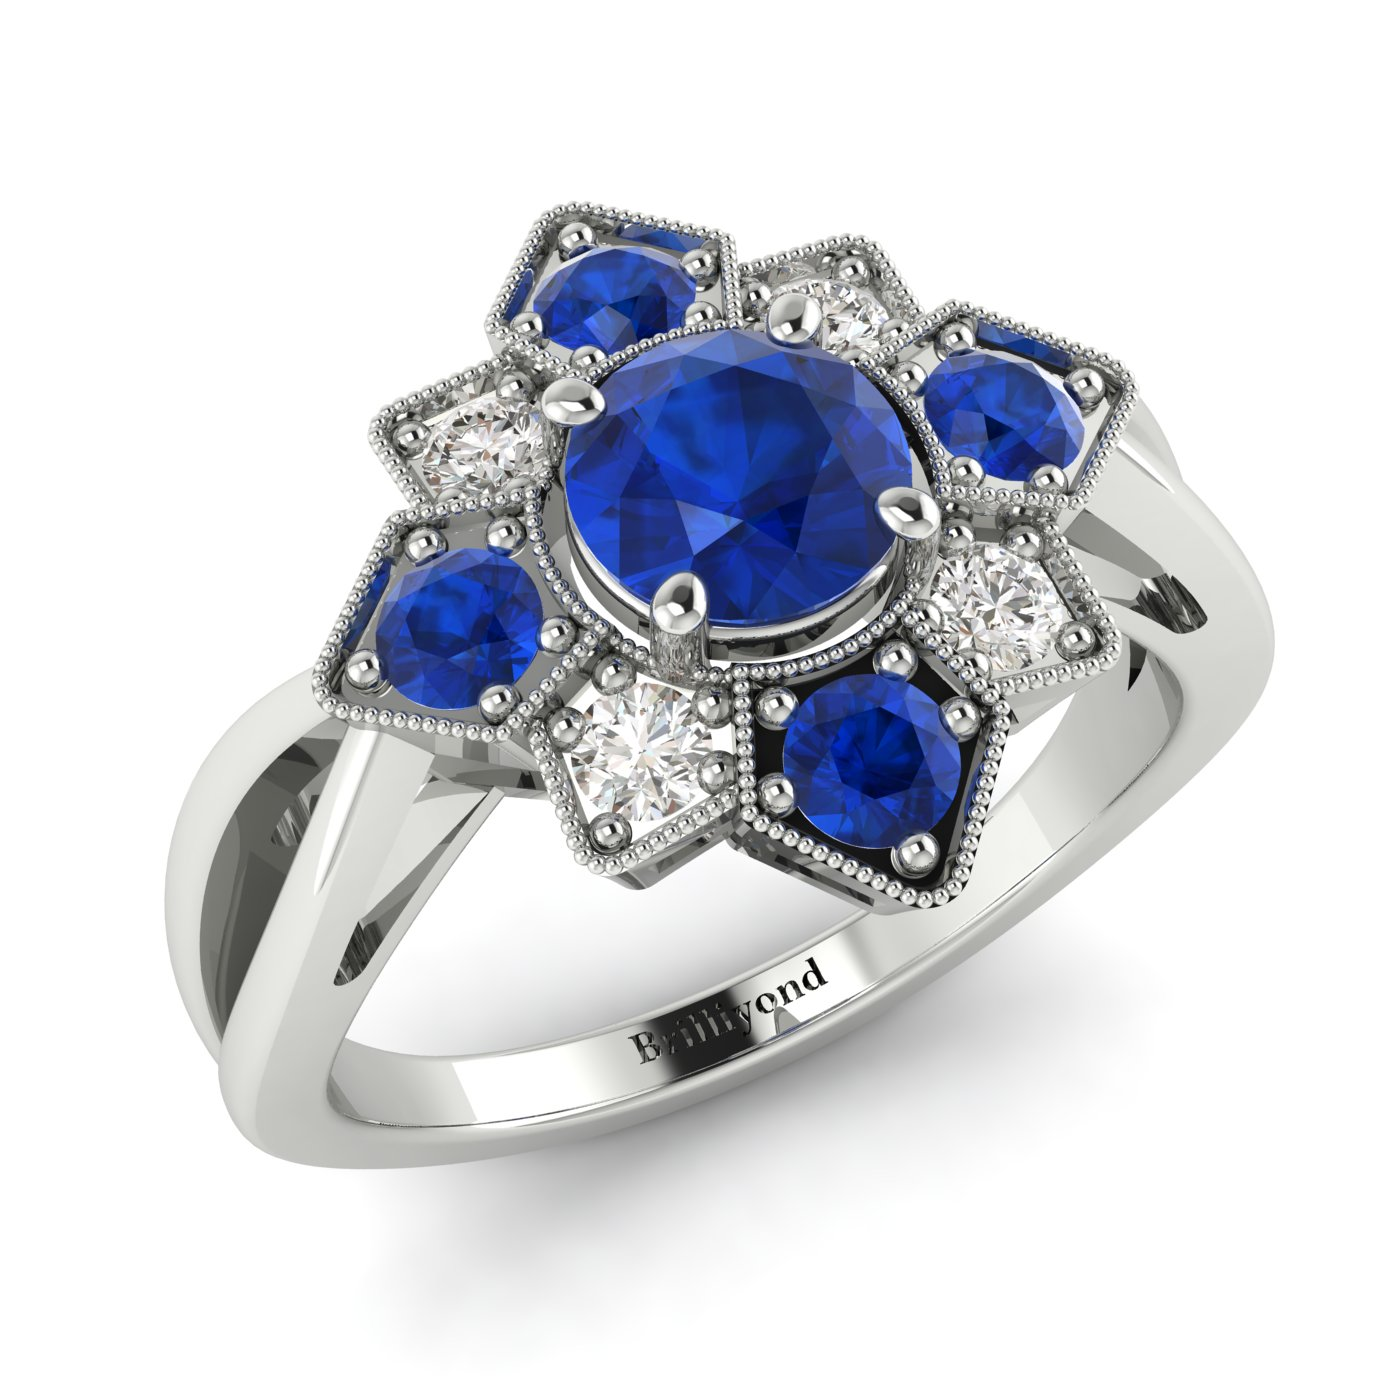 Blue Sapphire White Gold Cluster Engagement Ring Madonna_image2